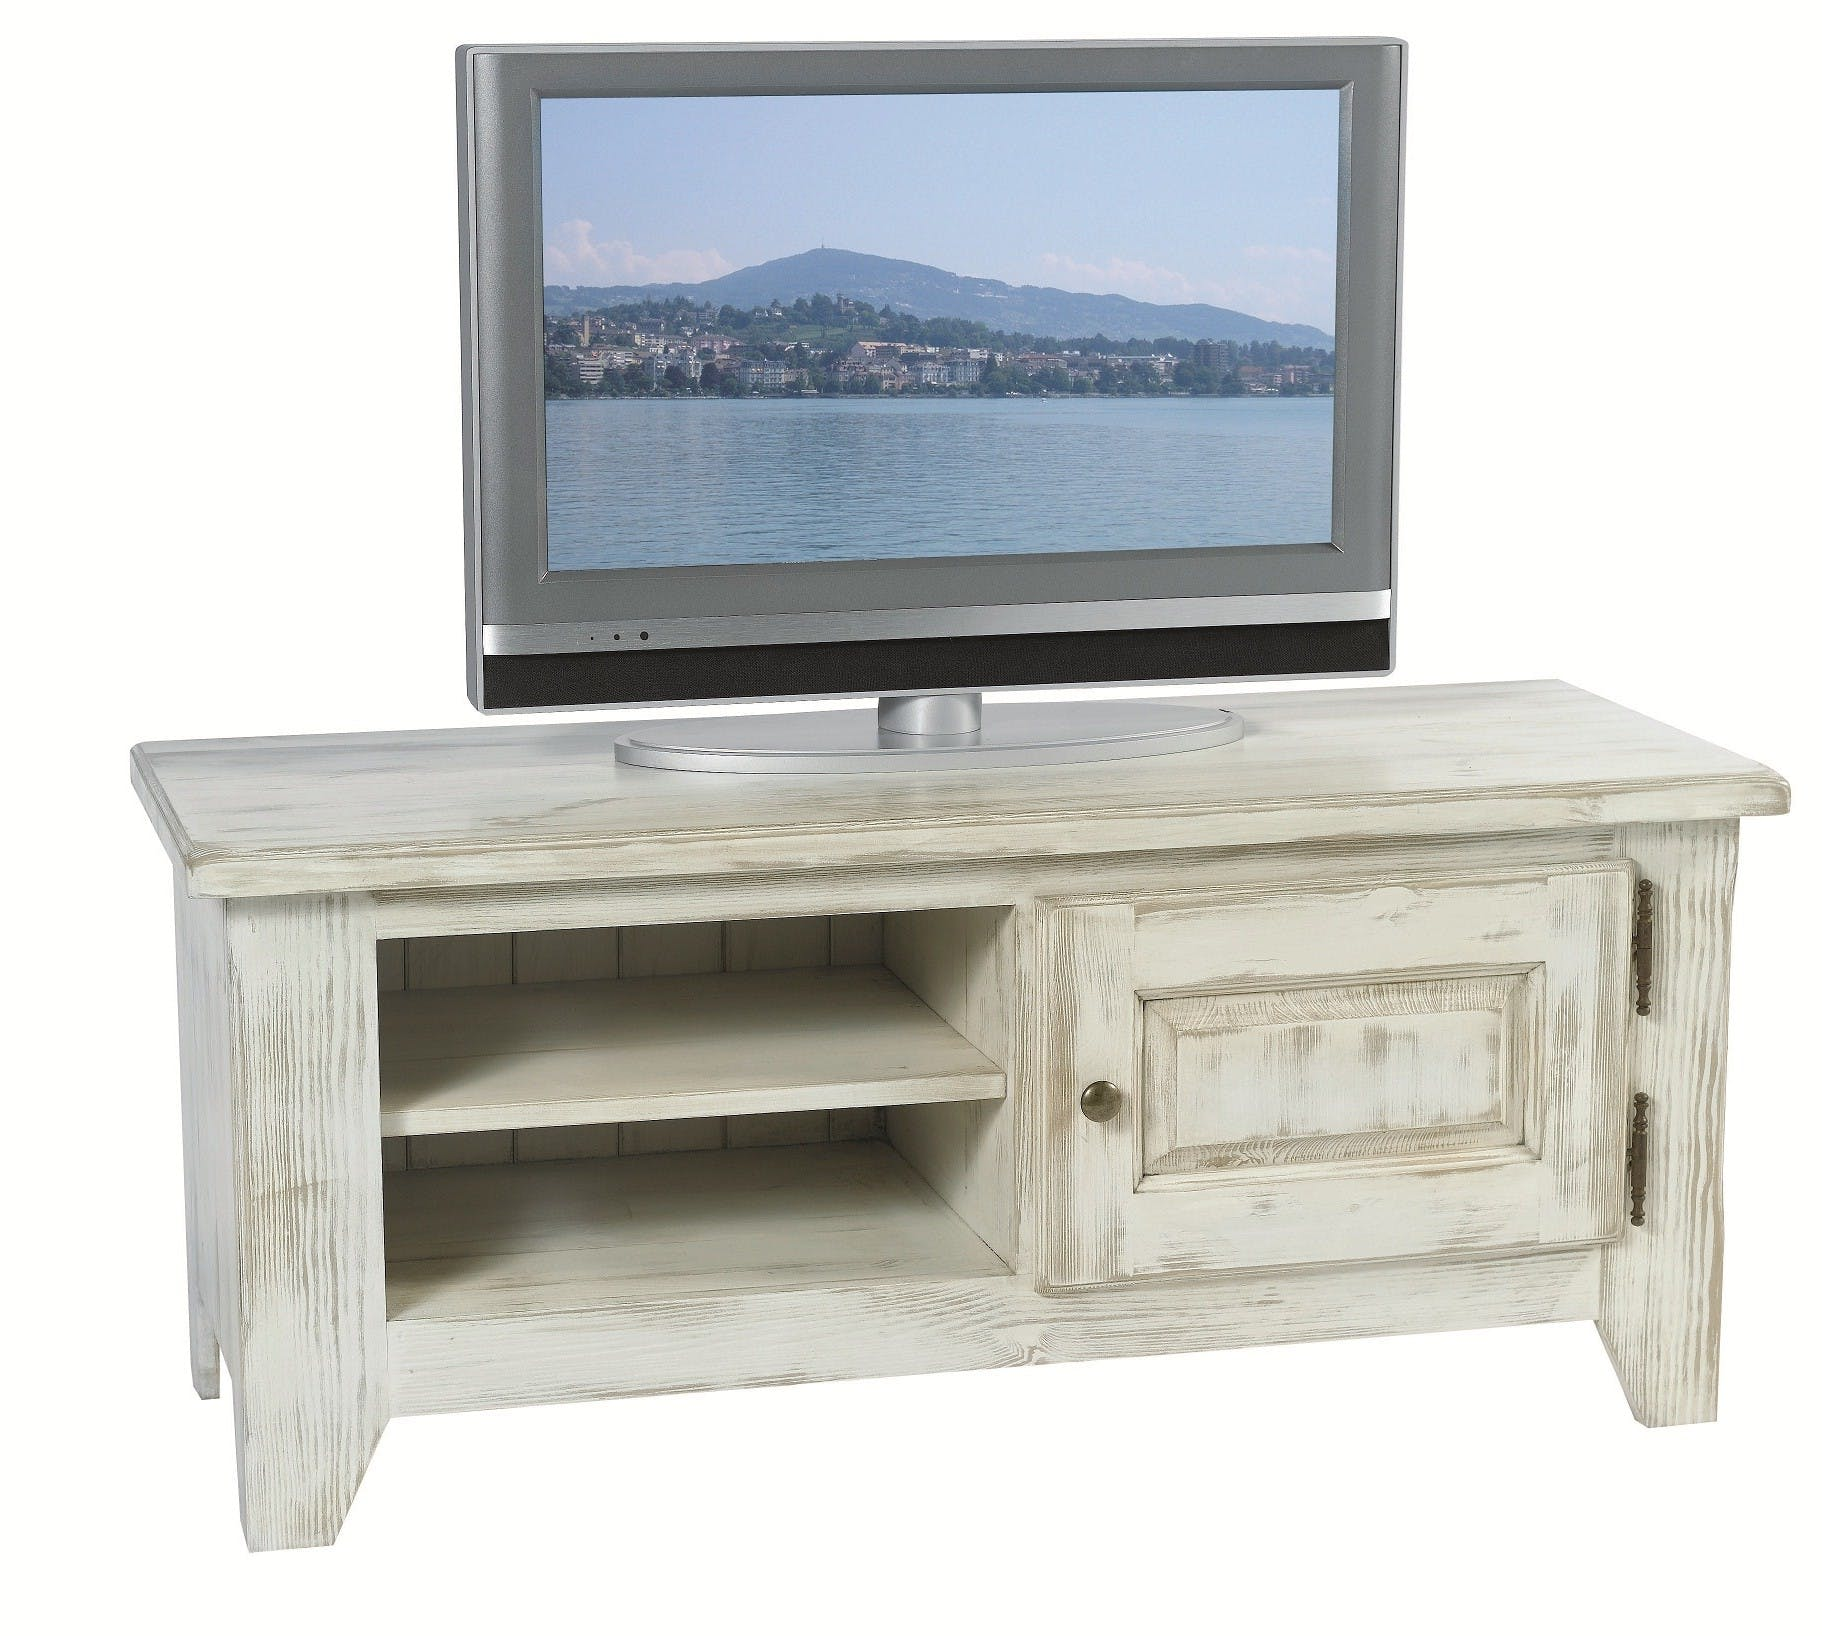 Meuble TV pin cérusé blanchi 1 porte 2 niches 116x43x50cm RIVAGE